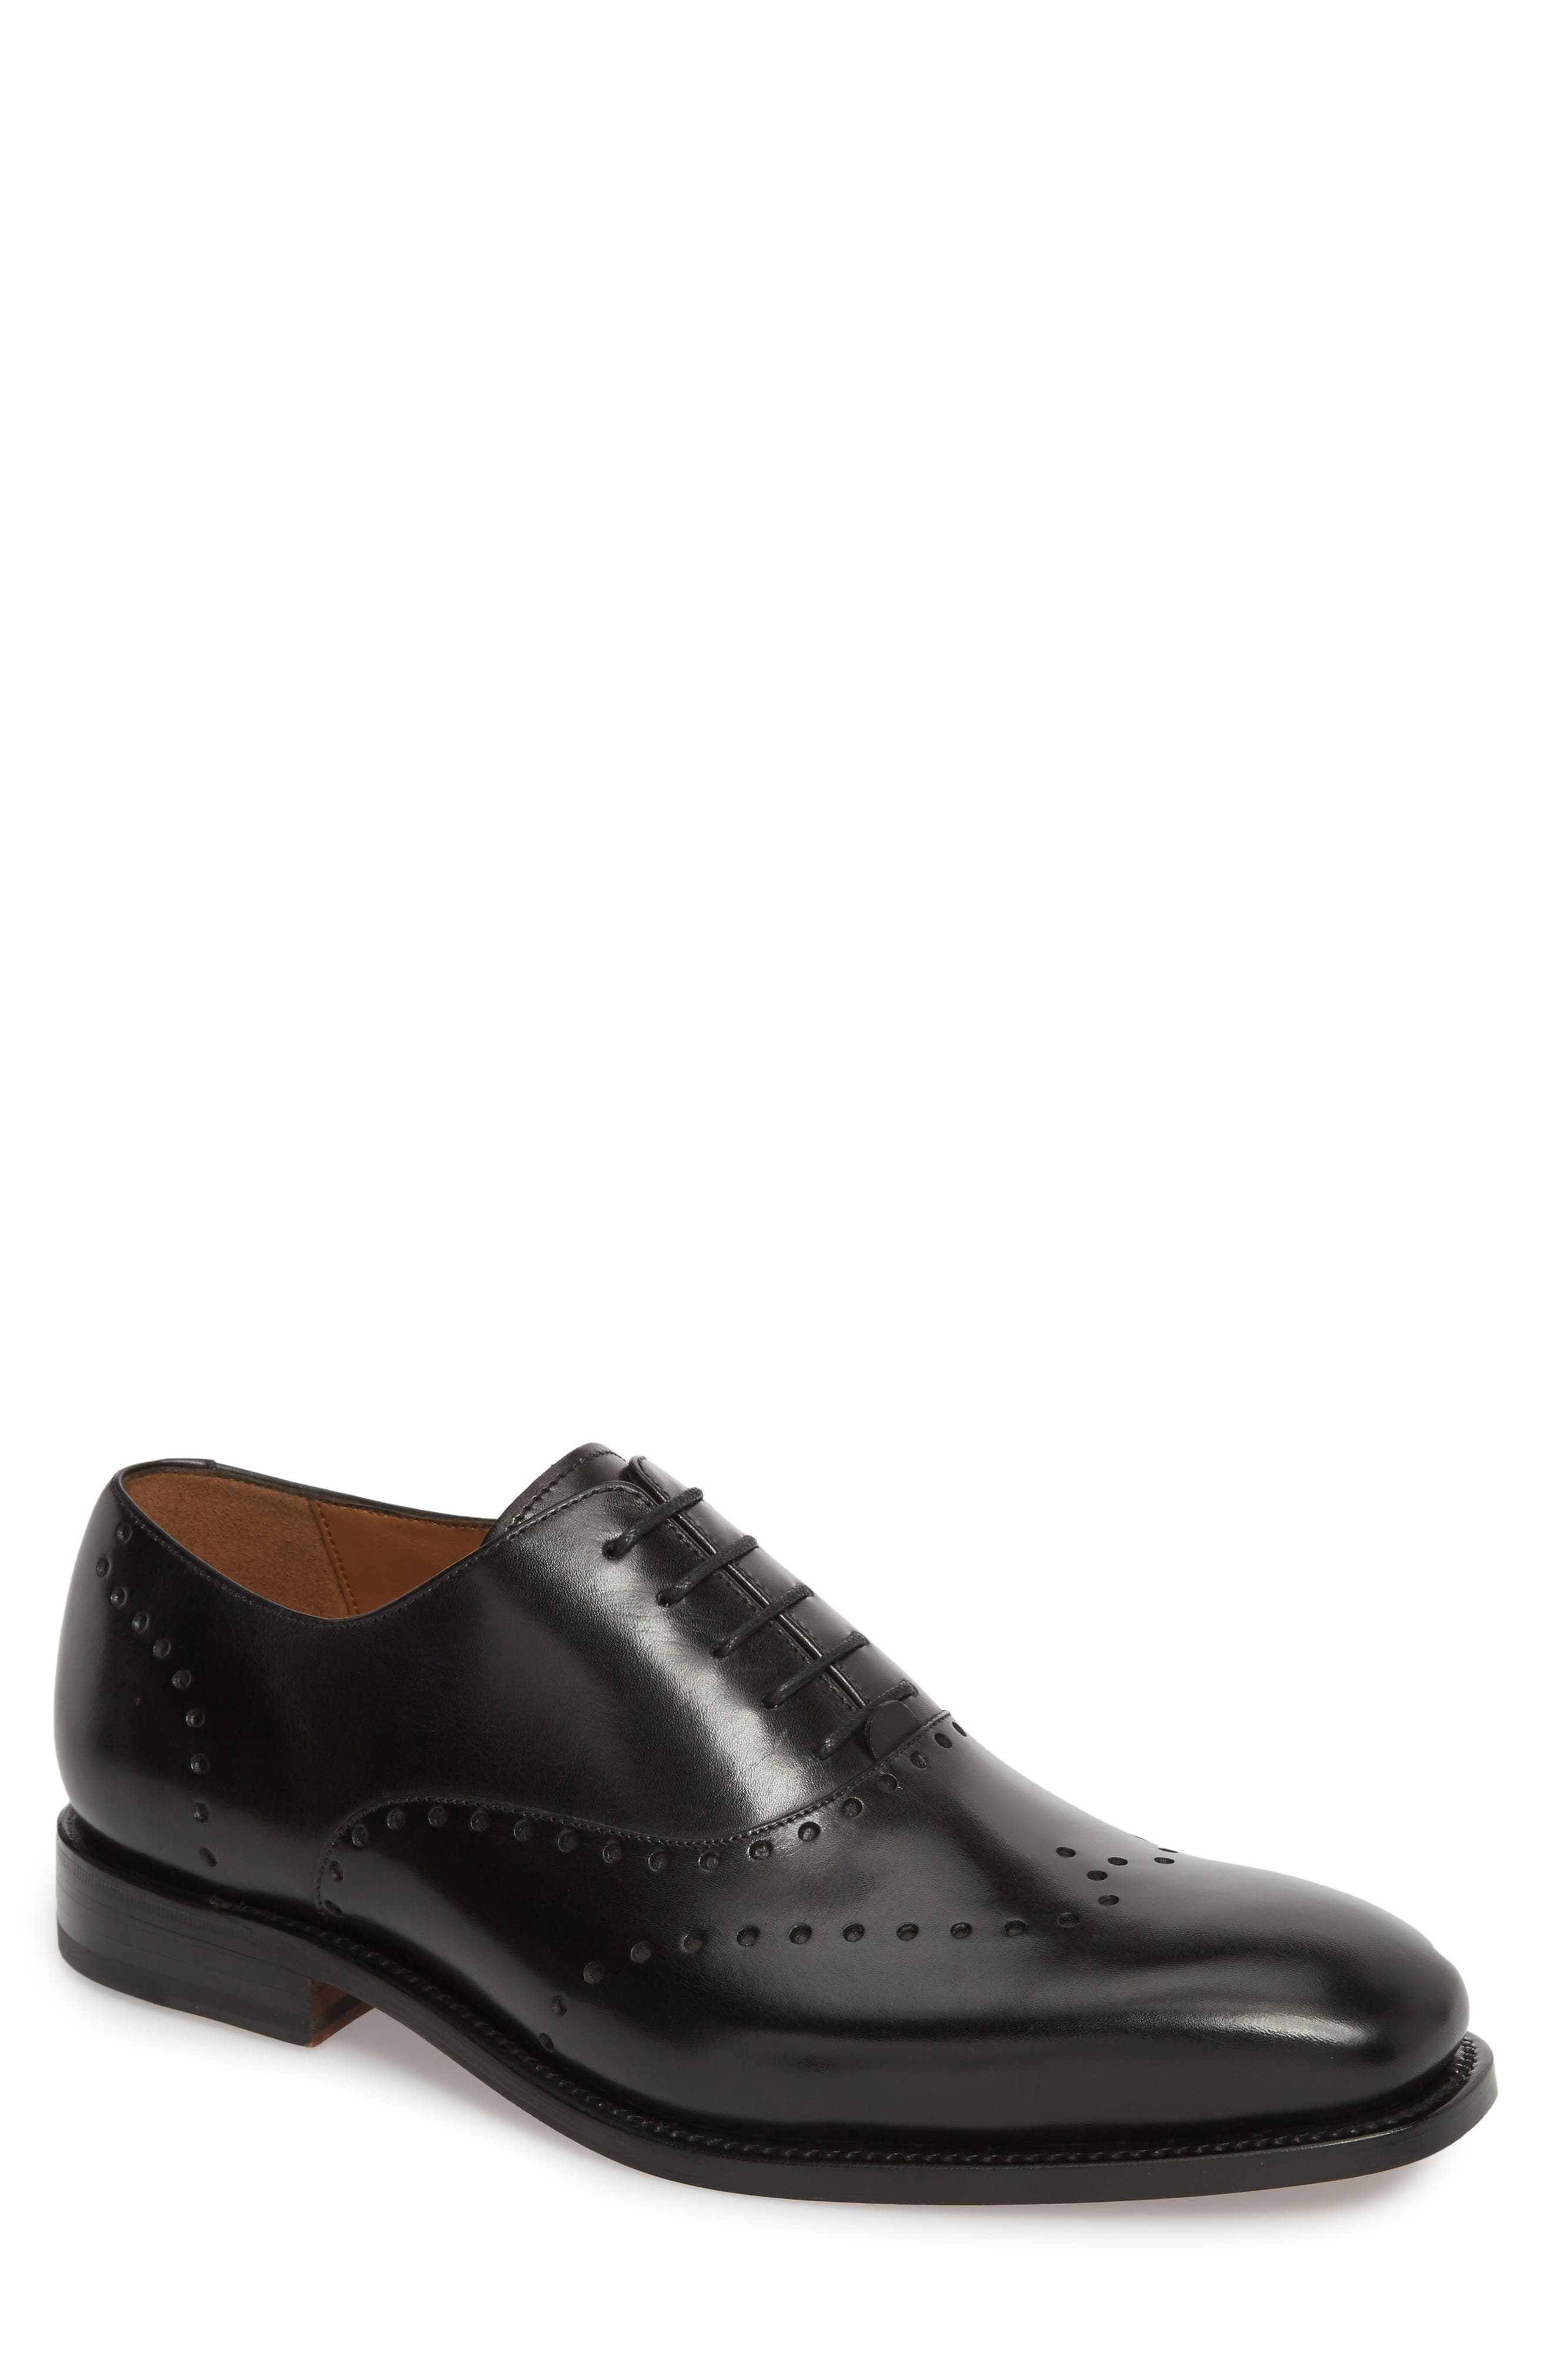 Belvedere Perforated Wingtip Oxford,                             Main thumbnail 1, color,                             Black